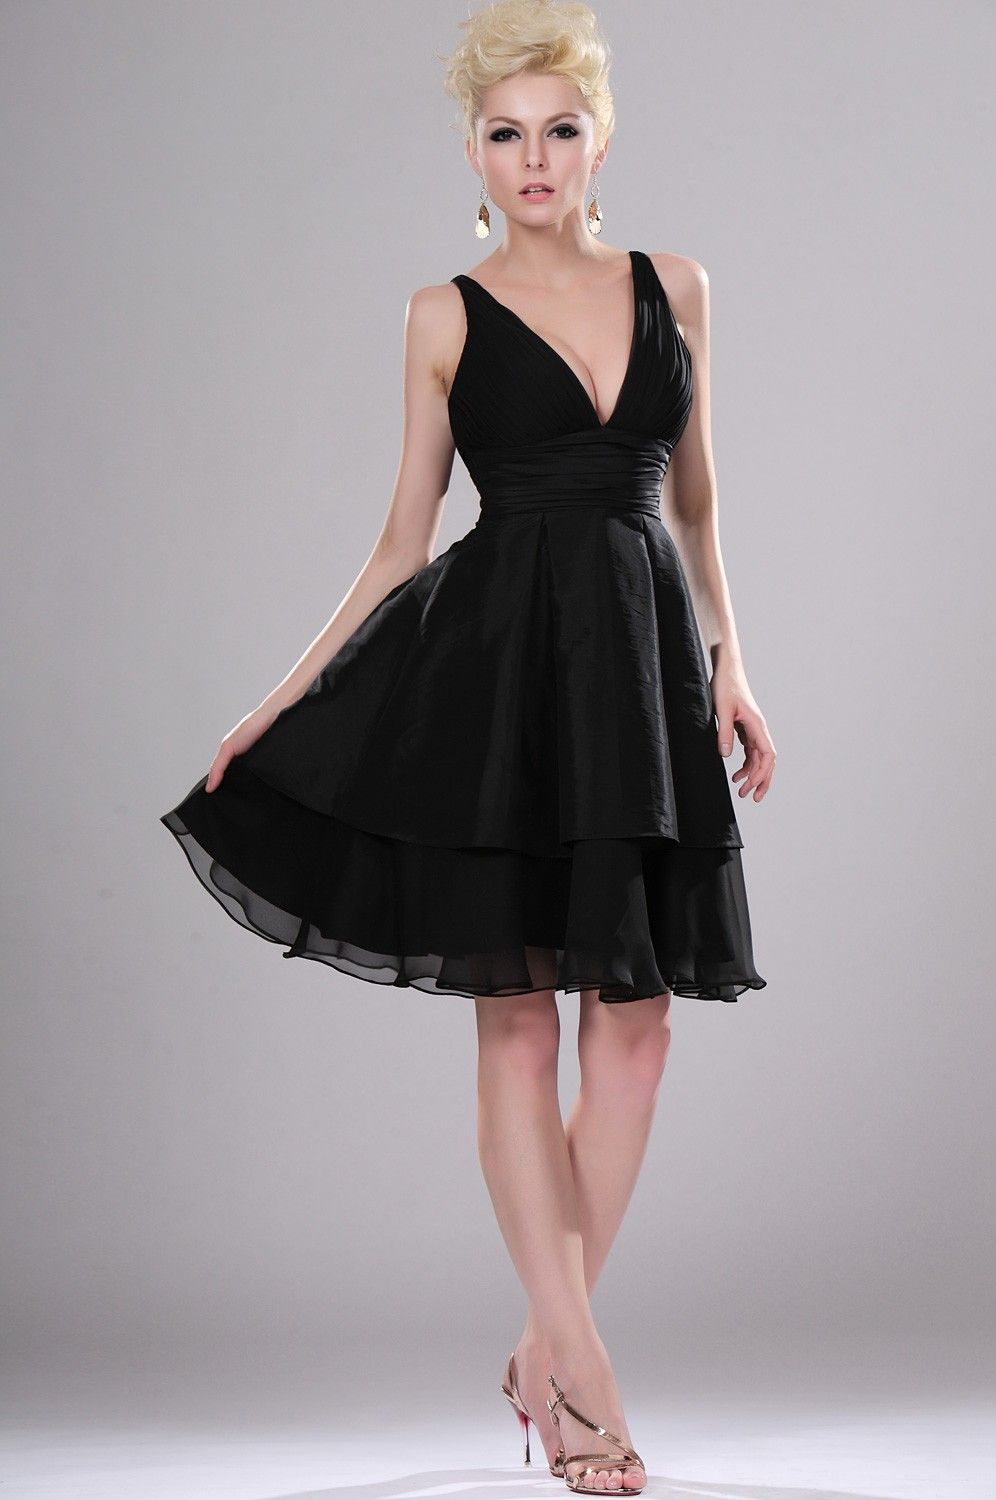 black-coctail-dress | Black Party Dress | Pinterest | Black party ...